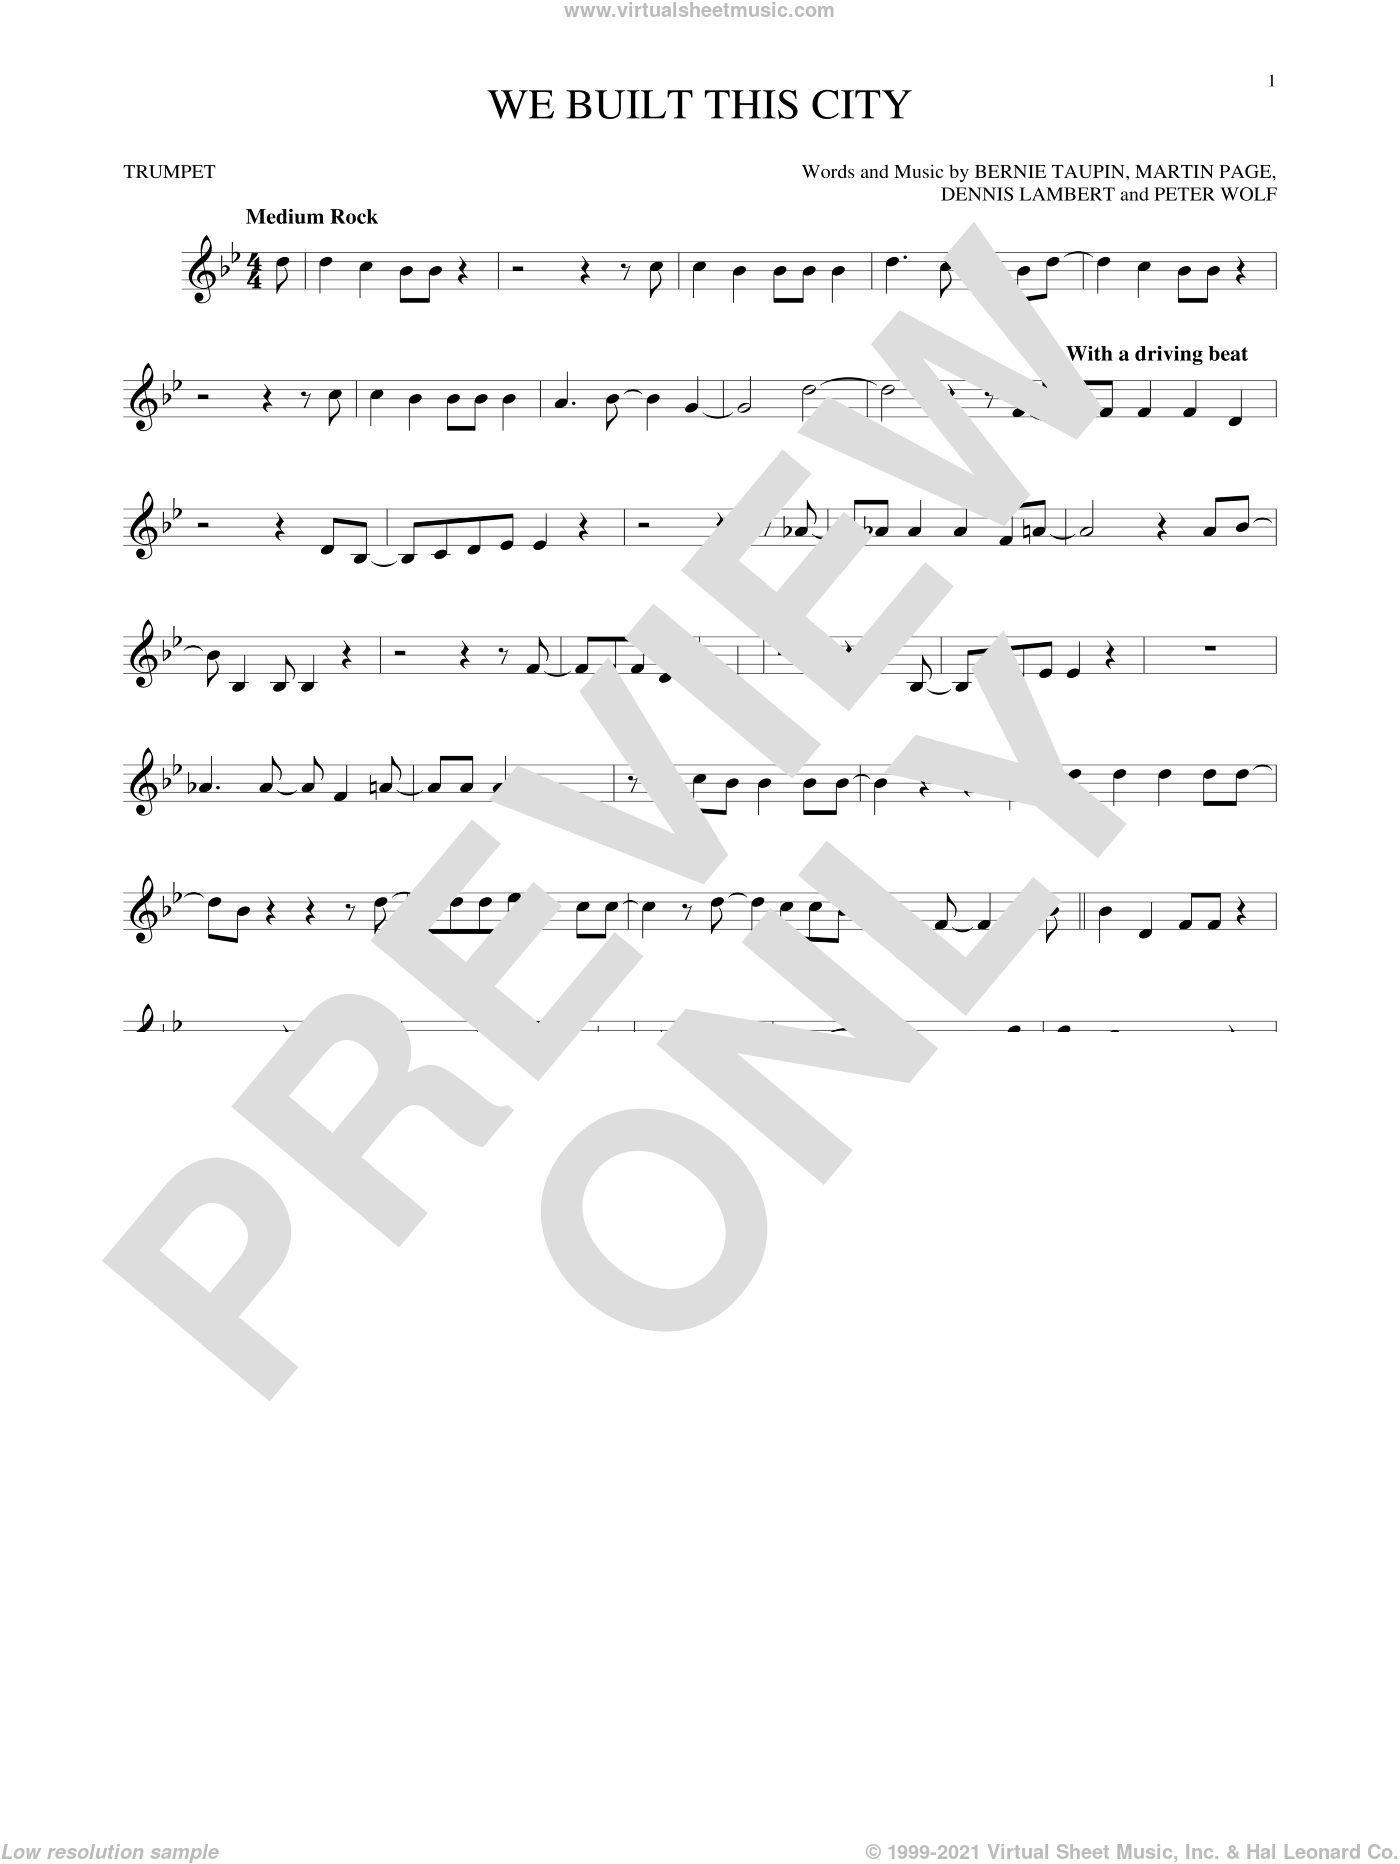 We Built This City sheet music for trumpet solo by Starship, Bernie Taupin, Dennis Lambert, Martin George Page and Peter Wolf, intermediate skill level